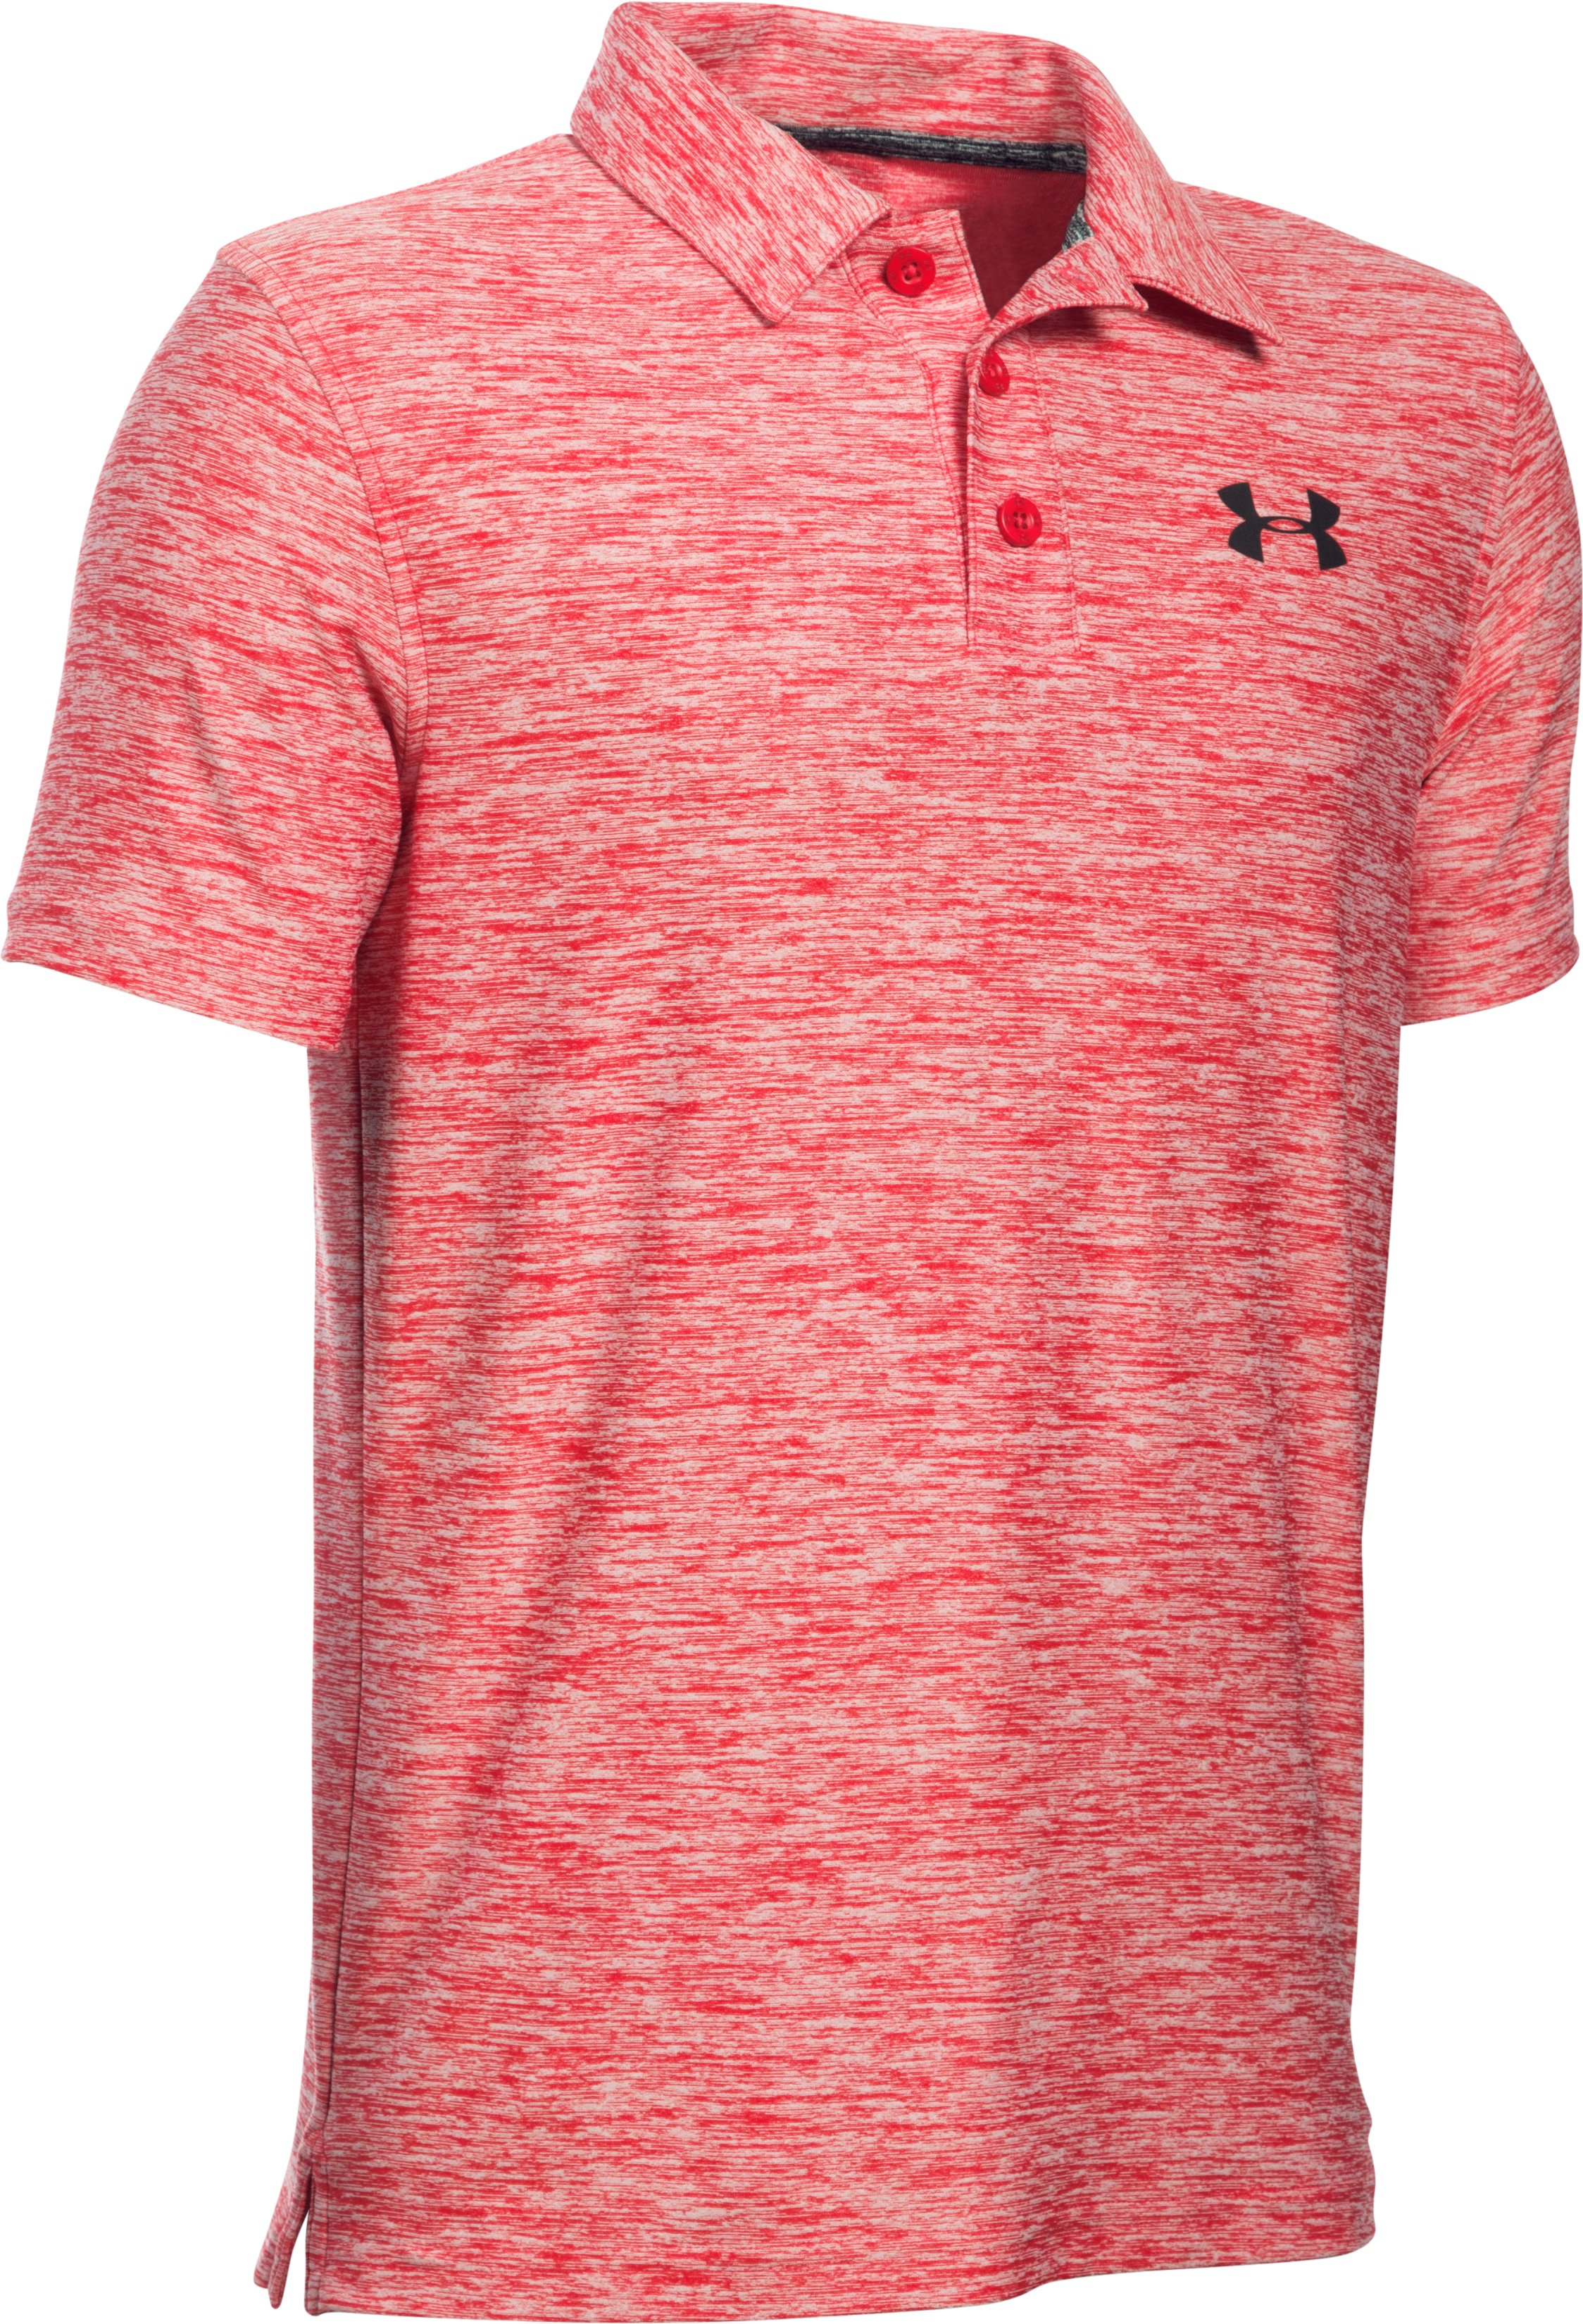 Boys' UA Playoff Polo, Red,